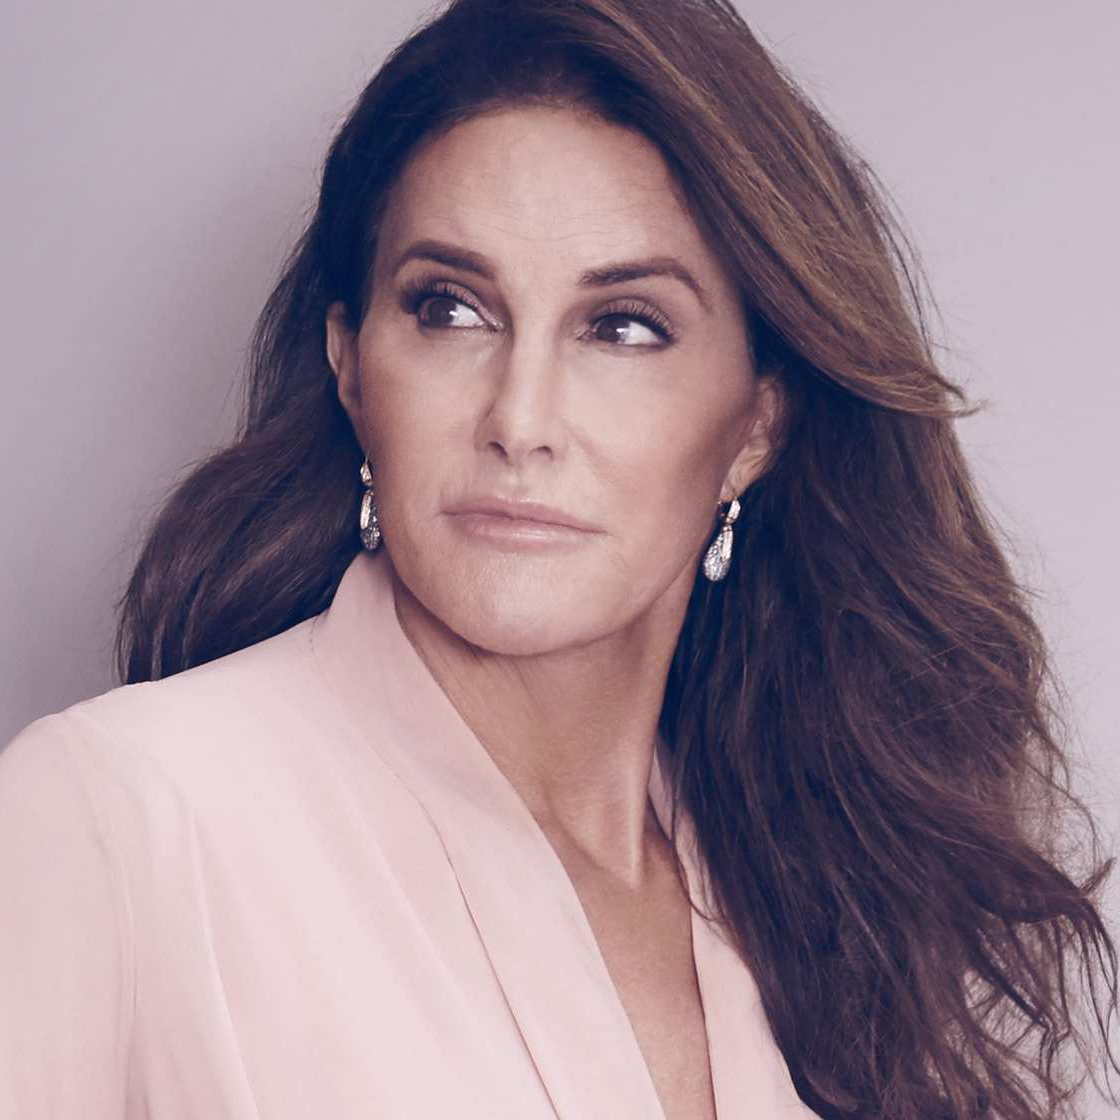 Caitlyn Jenner: Too Much, Too Soon?